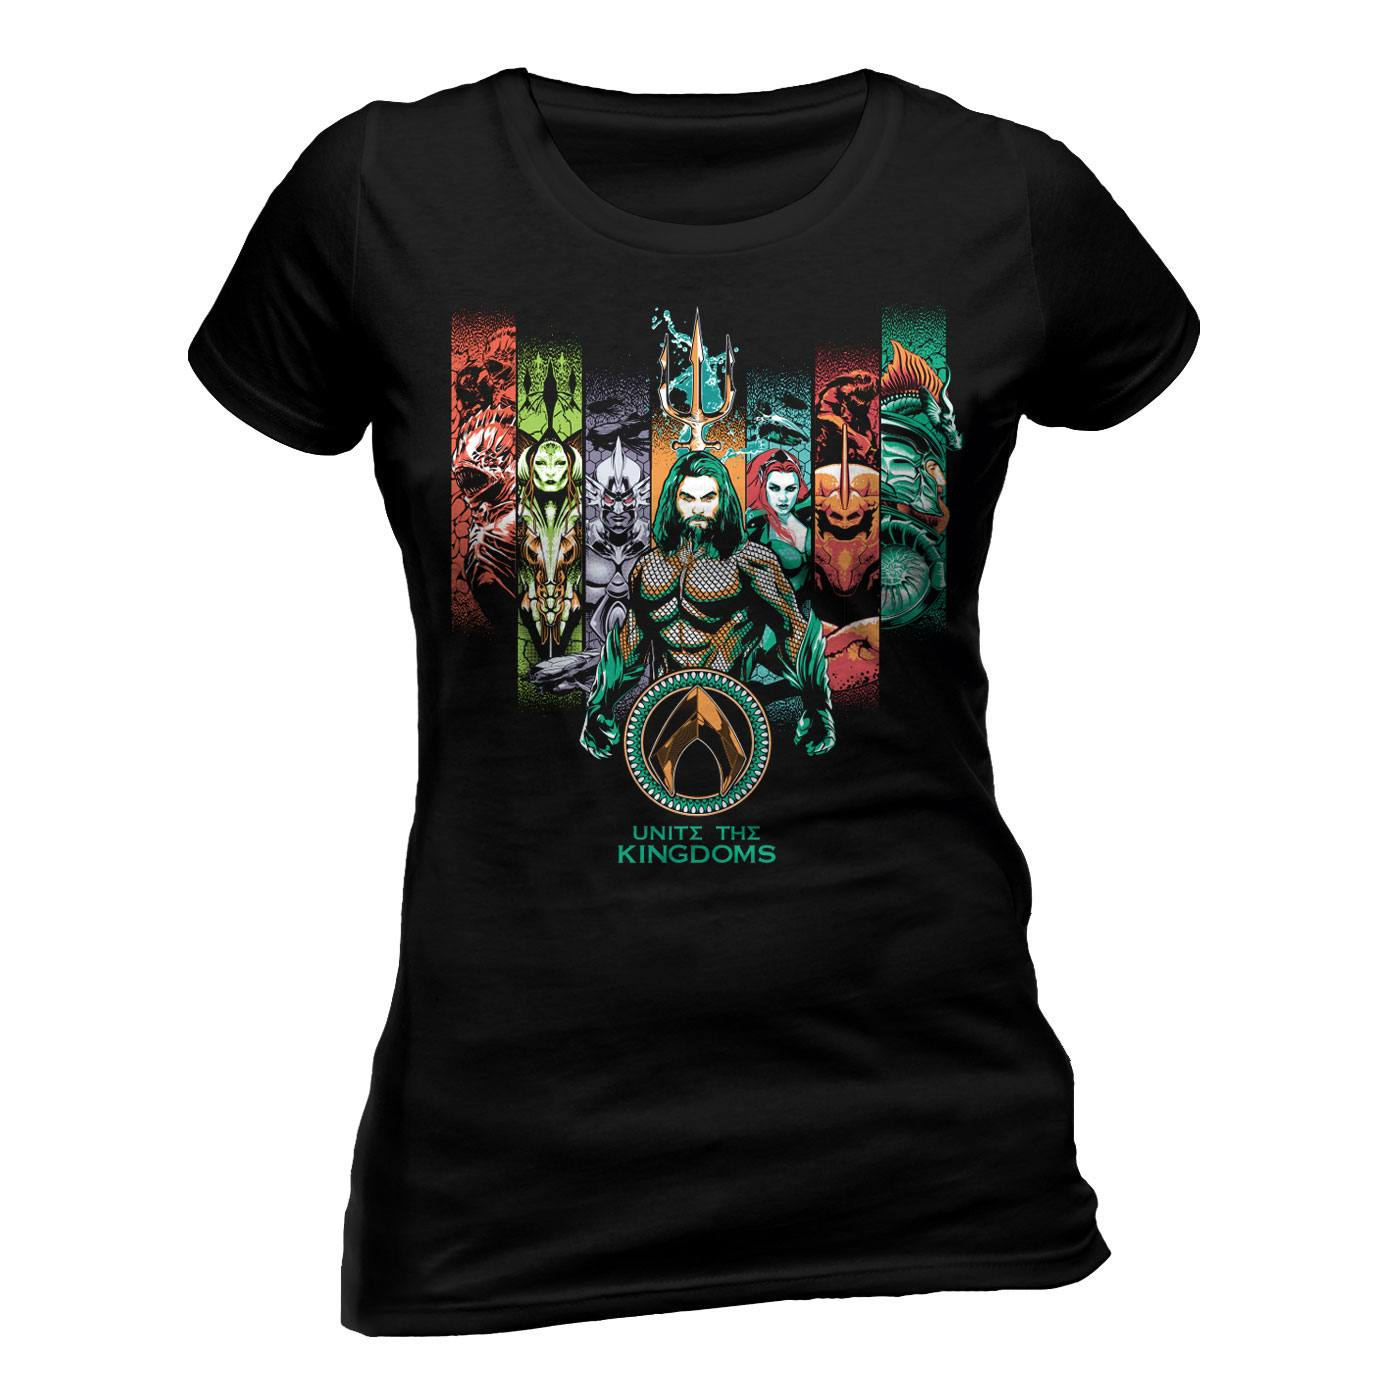 Aquaman Movie Ladies T-Shirt Unite The Kingdoms Size S